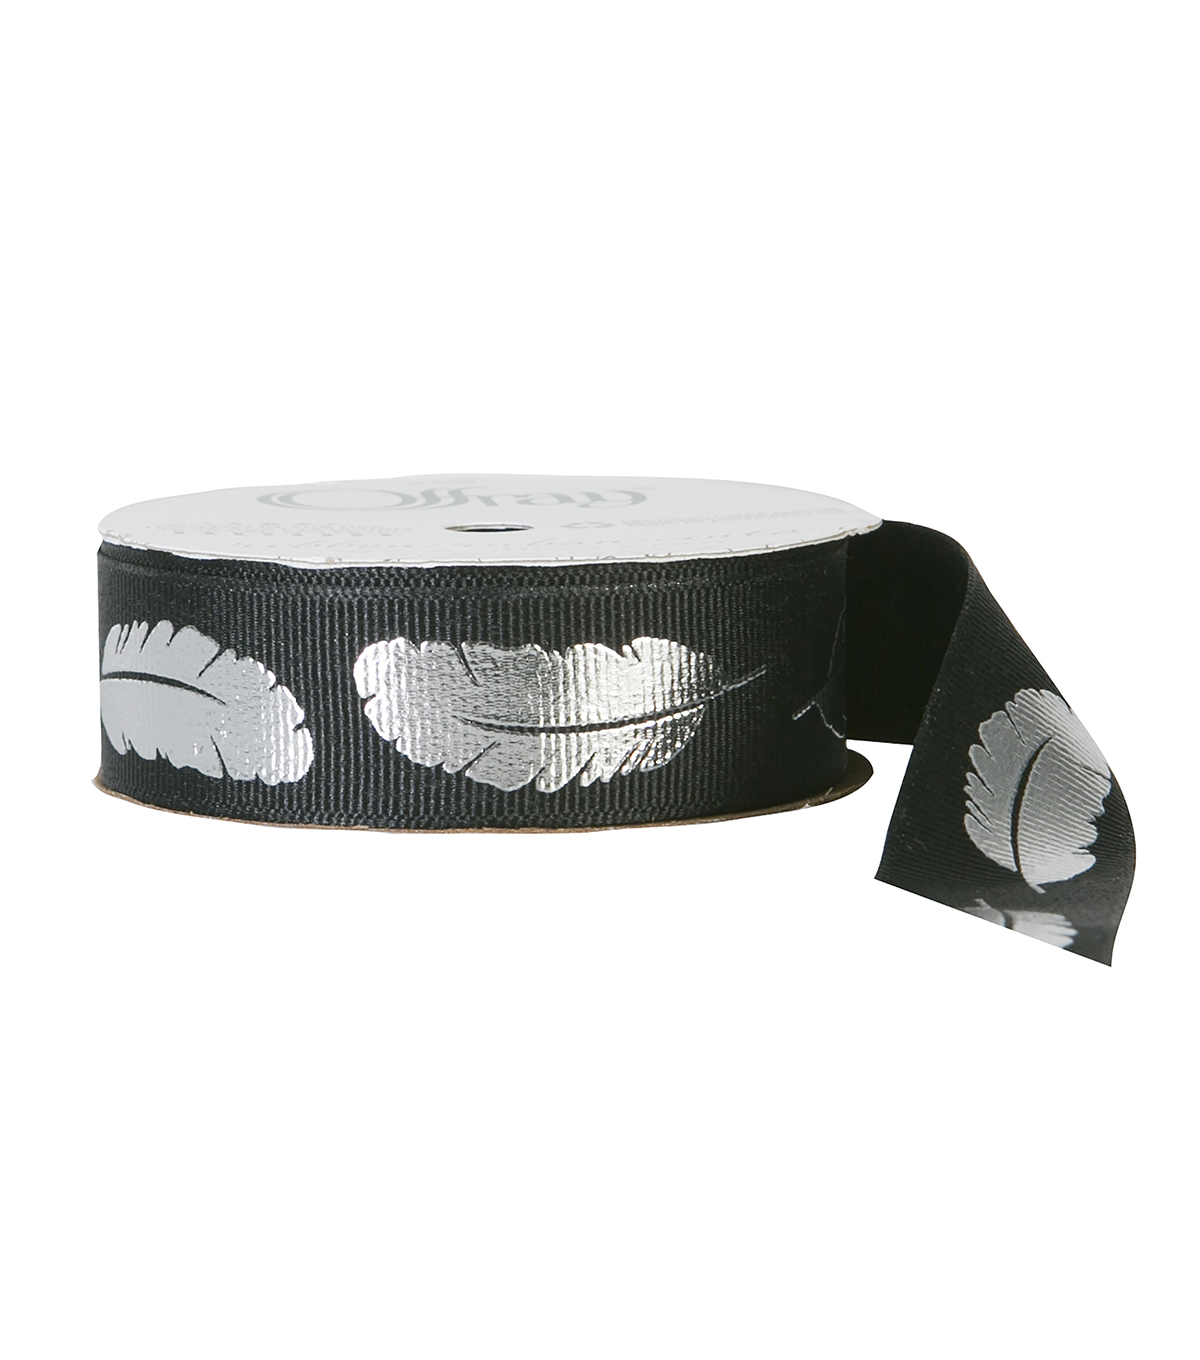 "Offray 7/8""x9' Metallic Feather Floral Grosgrain Ribbon-Black"